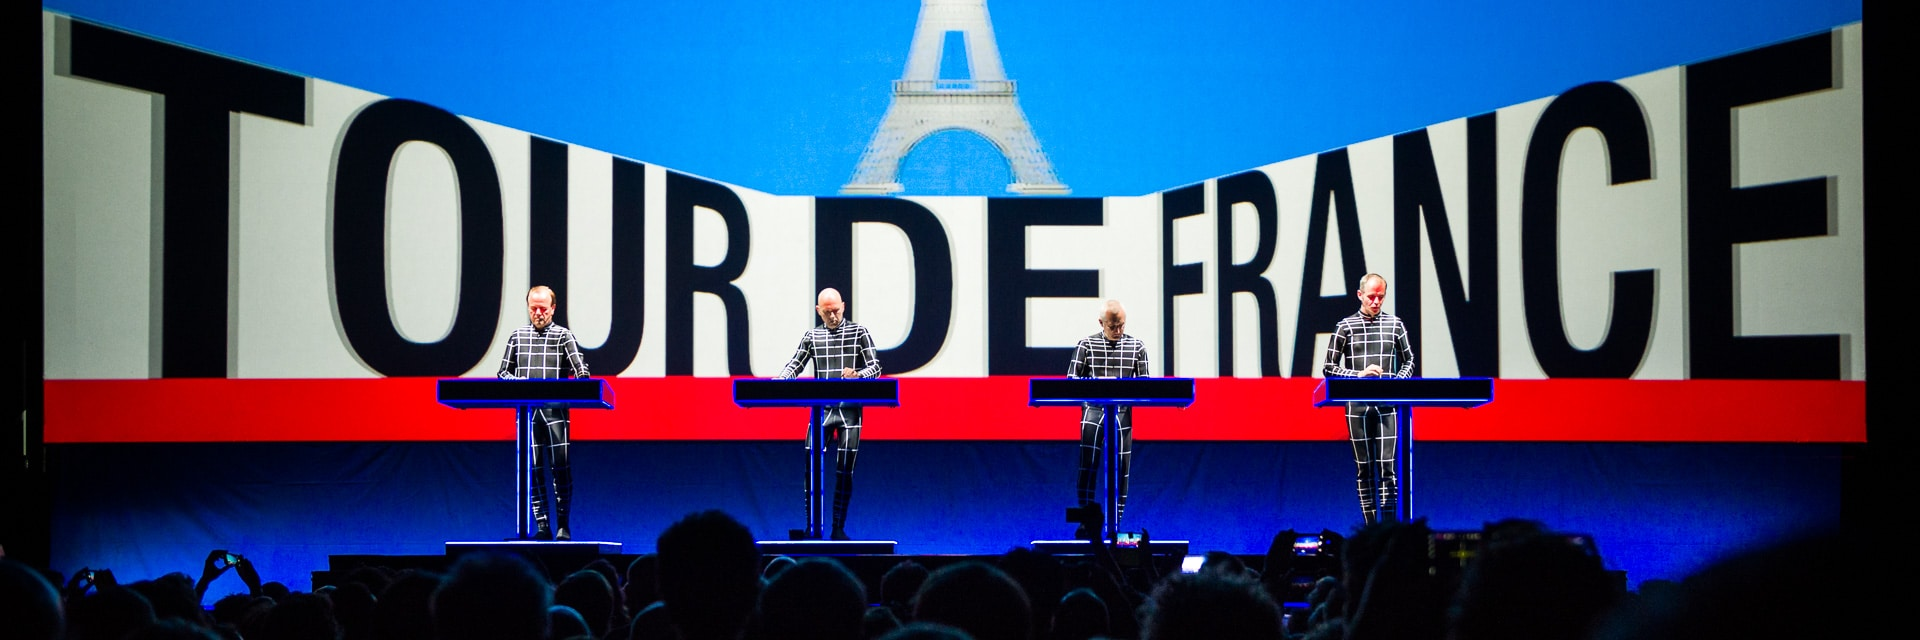 Kraftwerk speelt album Tour de France integraal met 3D visuals in TivoliVredenburg - ©Jelmer de Haas - All Rights Reserved